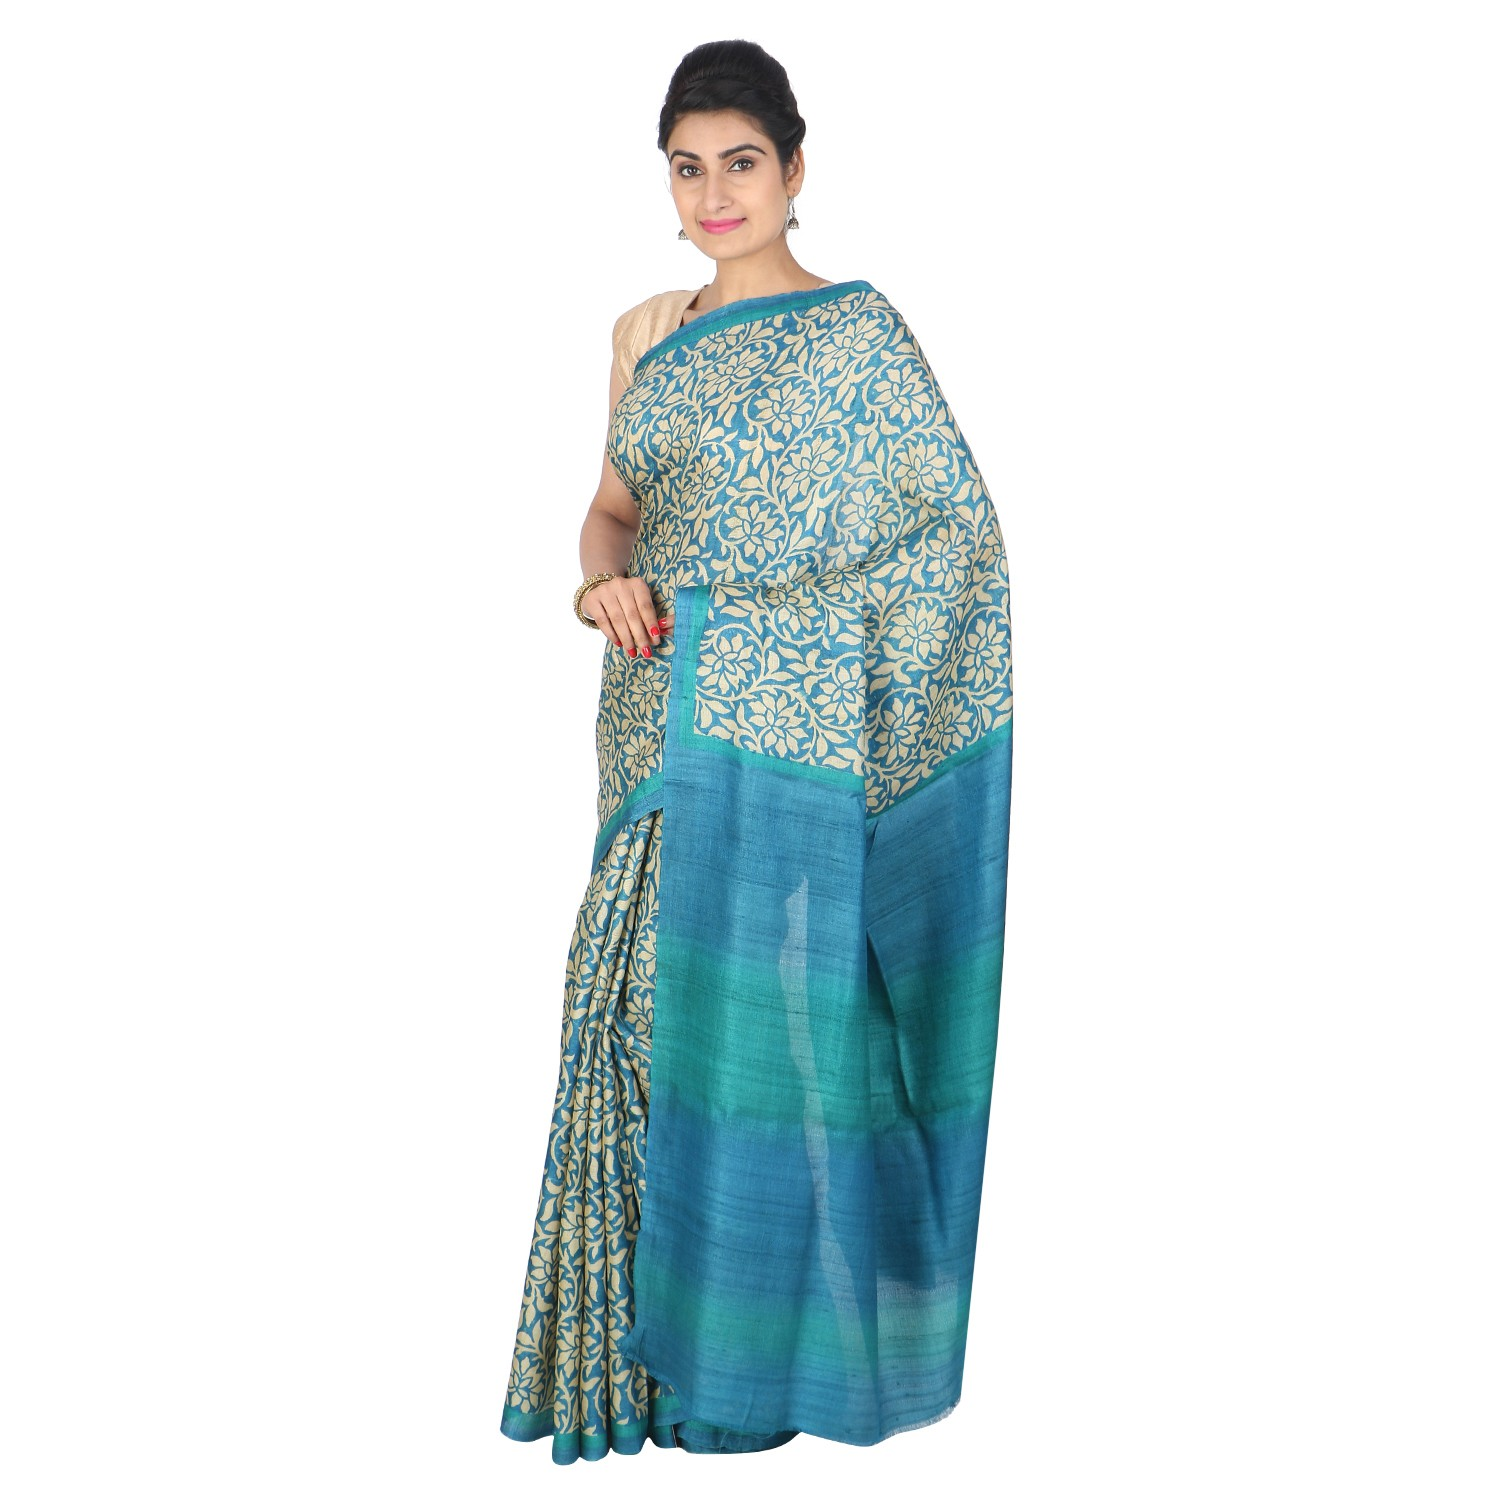 Handmade Blue And Green Tussar Silk Saree by Weavers of Bihar